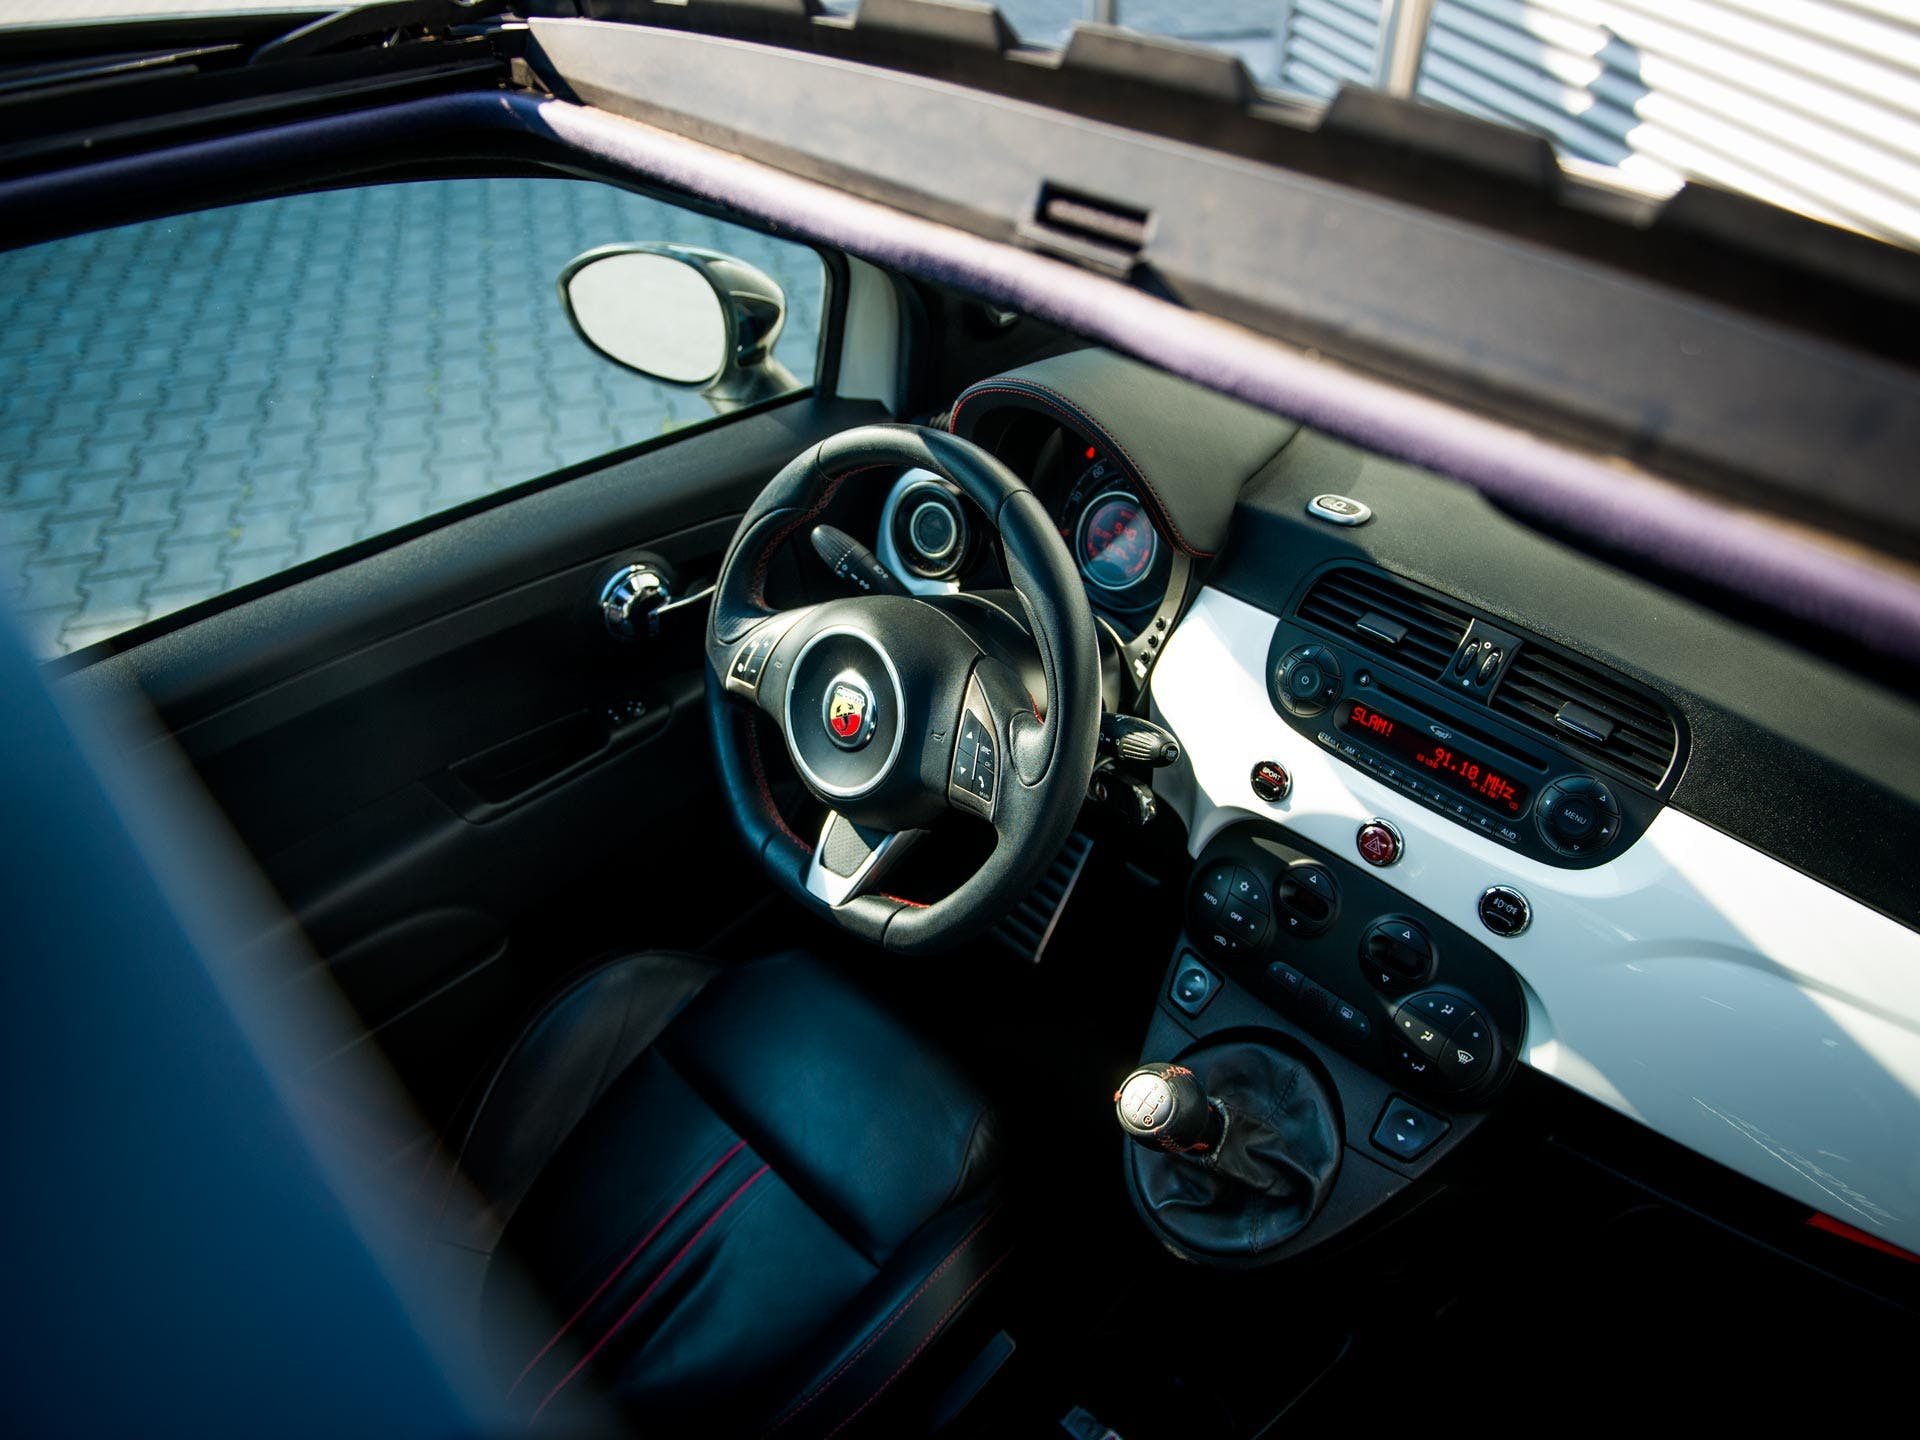 Tweedehands Abarth 500 2011 occasion